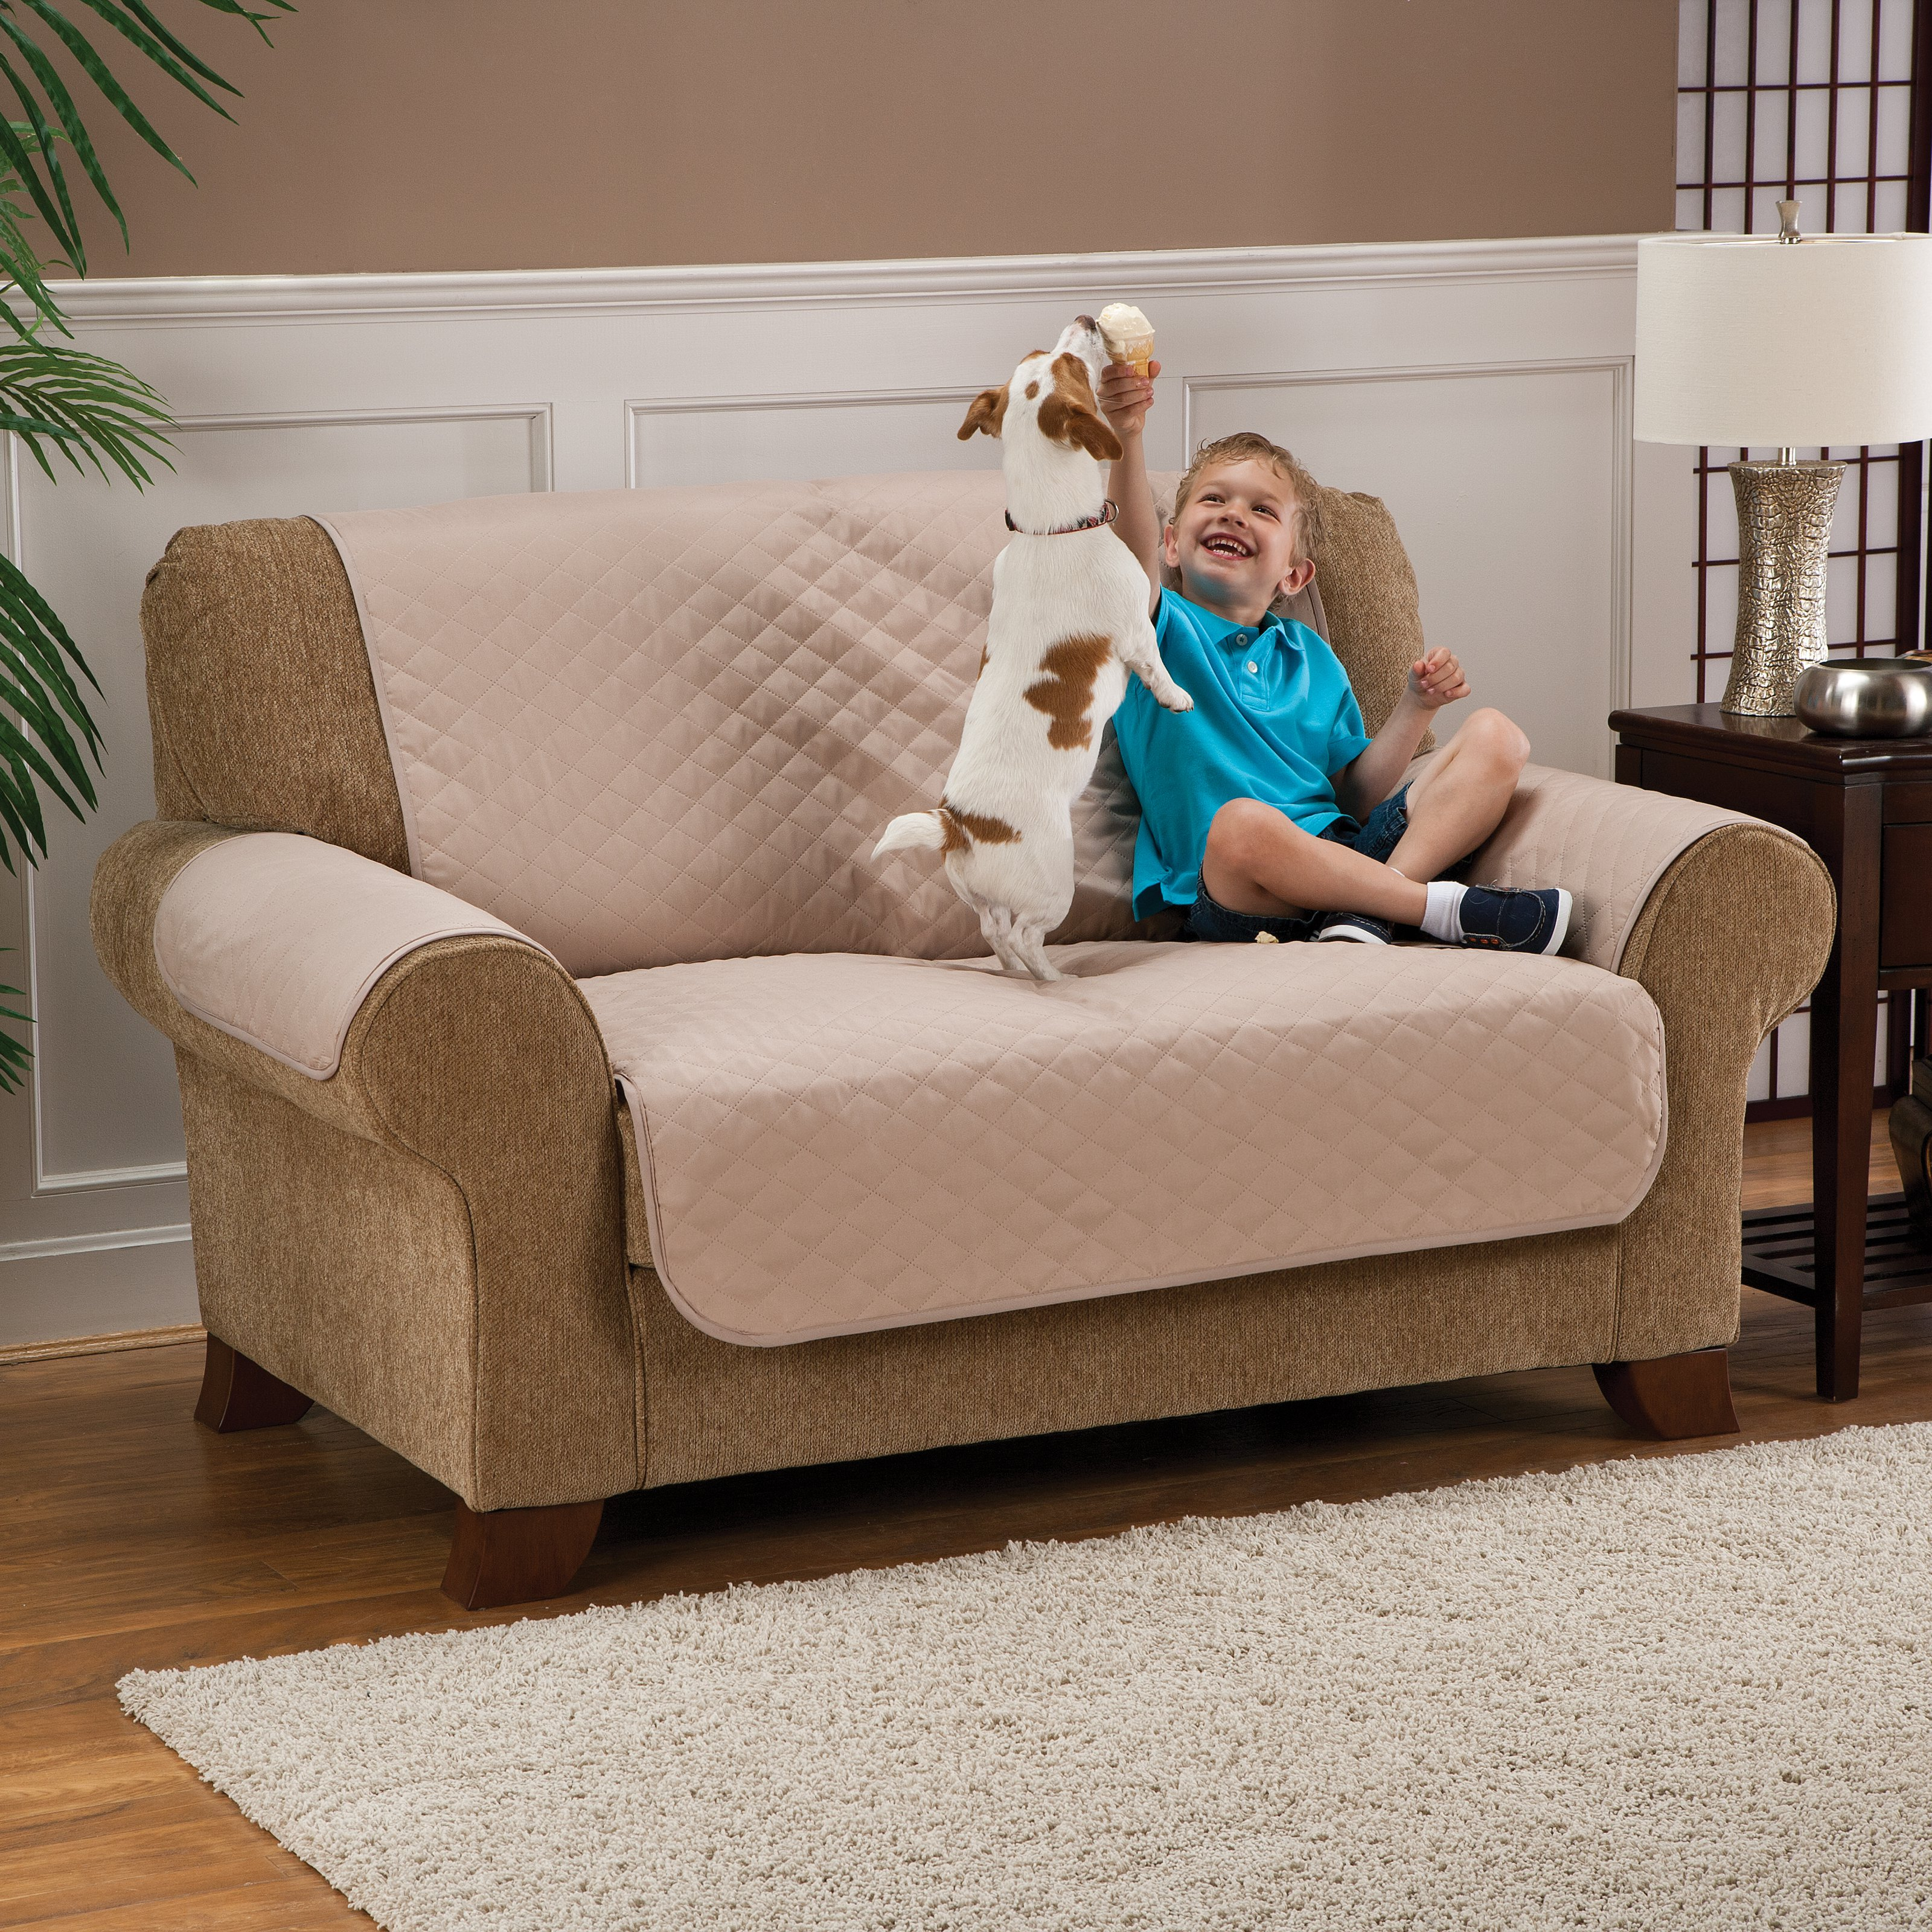 NFL Recliner Reversible Furniture Protector with Elastic Straps